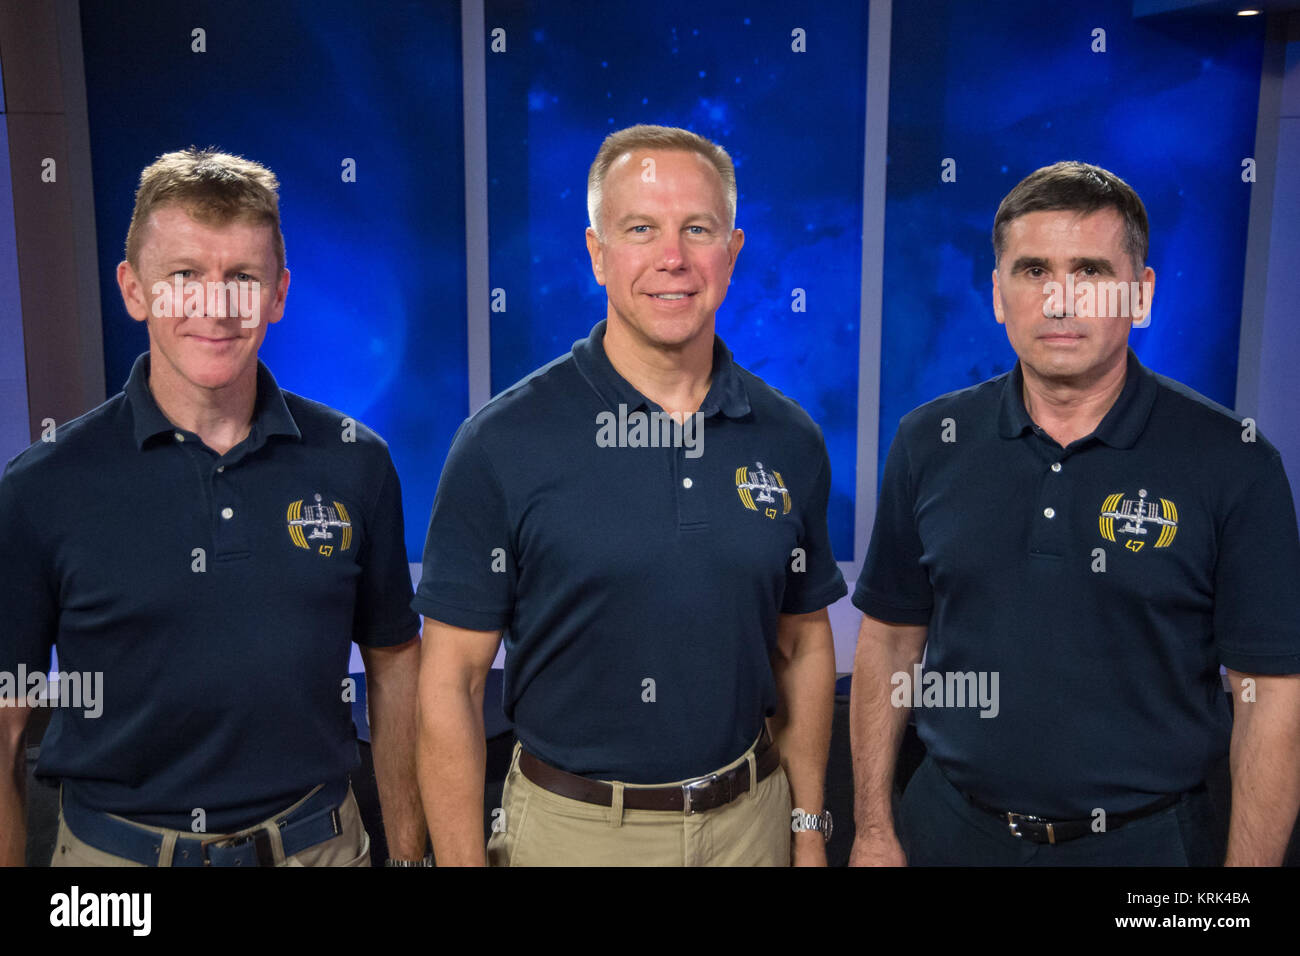 Date: 09-24-15 Location: Bldg 2, Studio B Subject: Expedition 46/47 press conference with crew Timonty Peake, Yuri - Stock Image